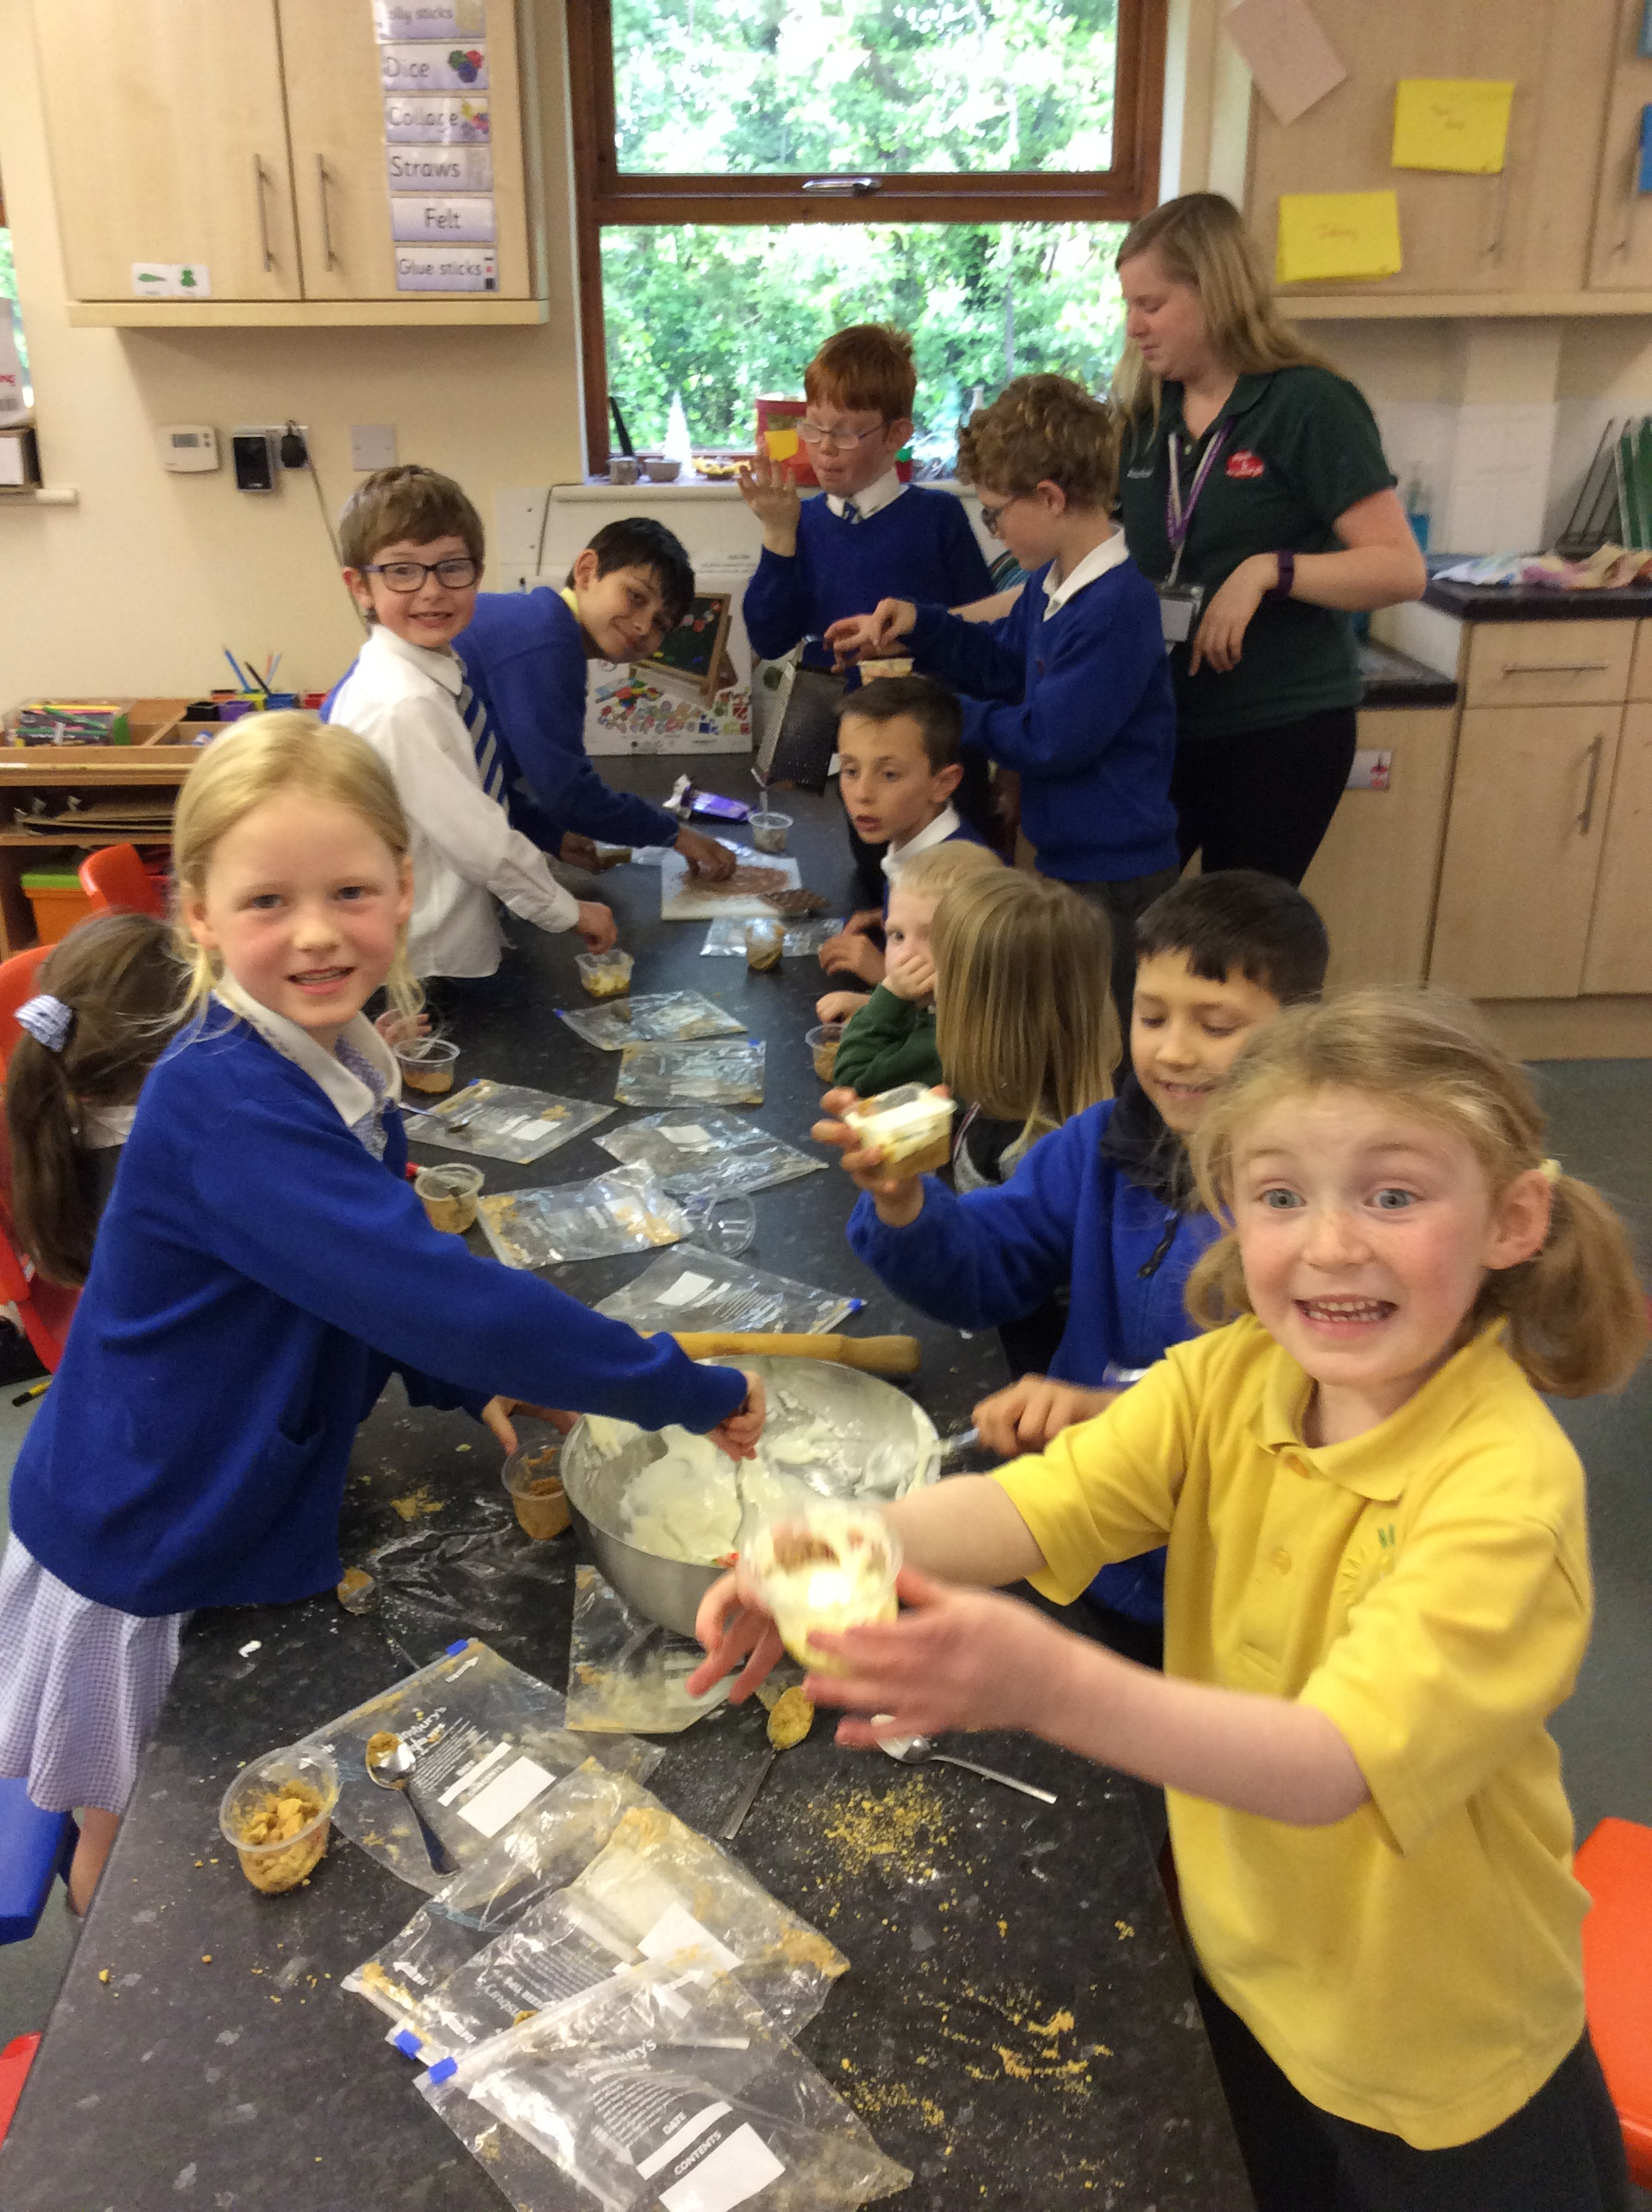 After School Club Making Cheesecake